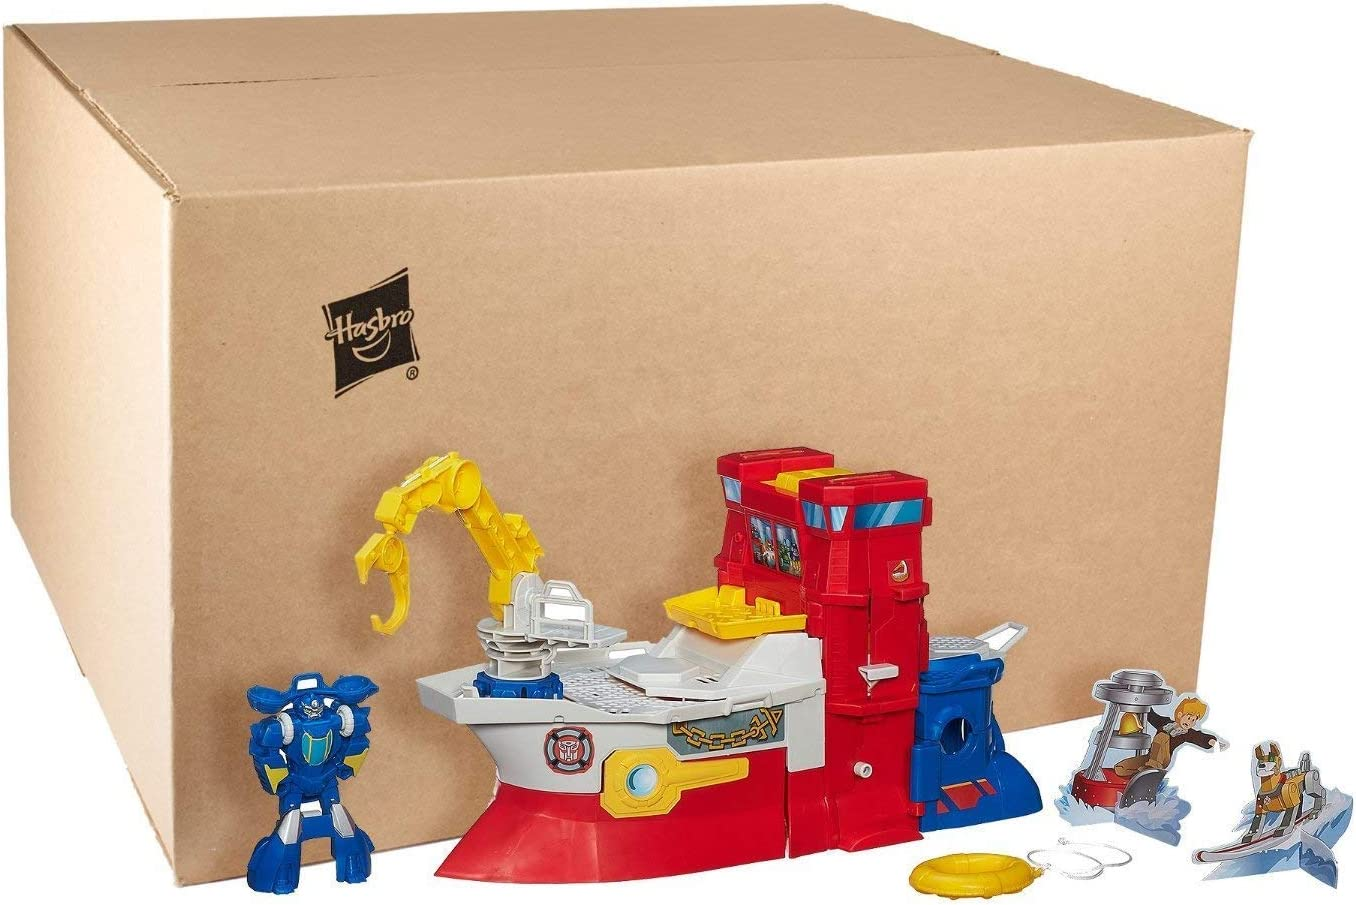 Playskool Transformers Rescue Bots Series High Tide Robot Action Figure